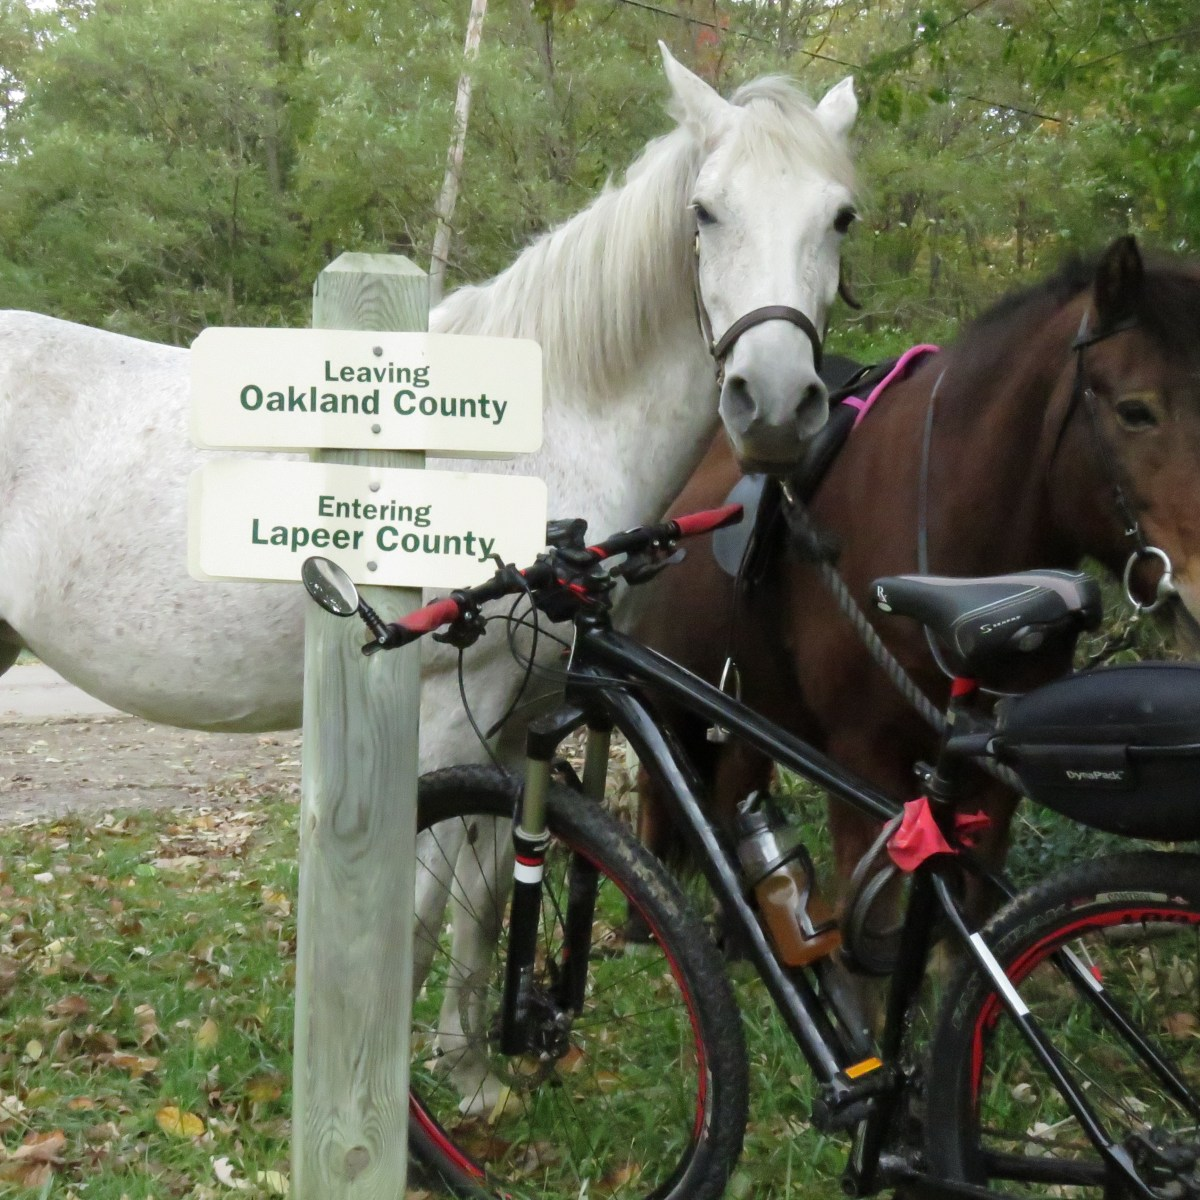 A white and a dark brown horse stand next to two signs on a post at the Oakland/Lapeer County Lines